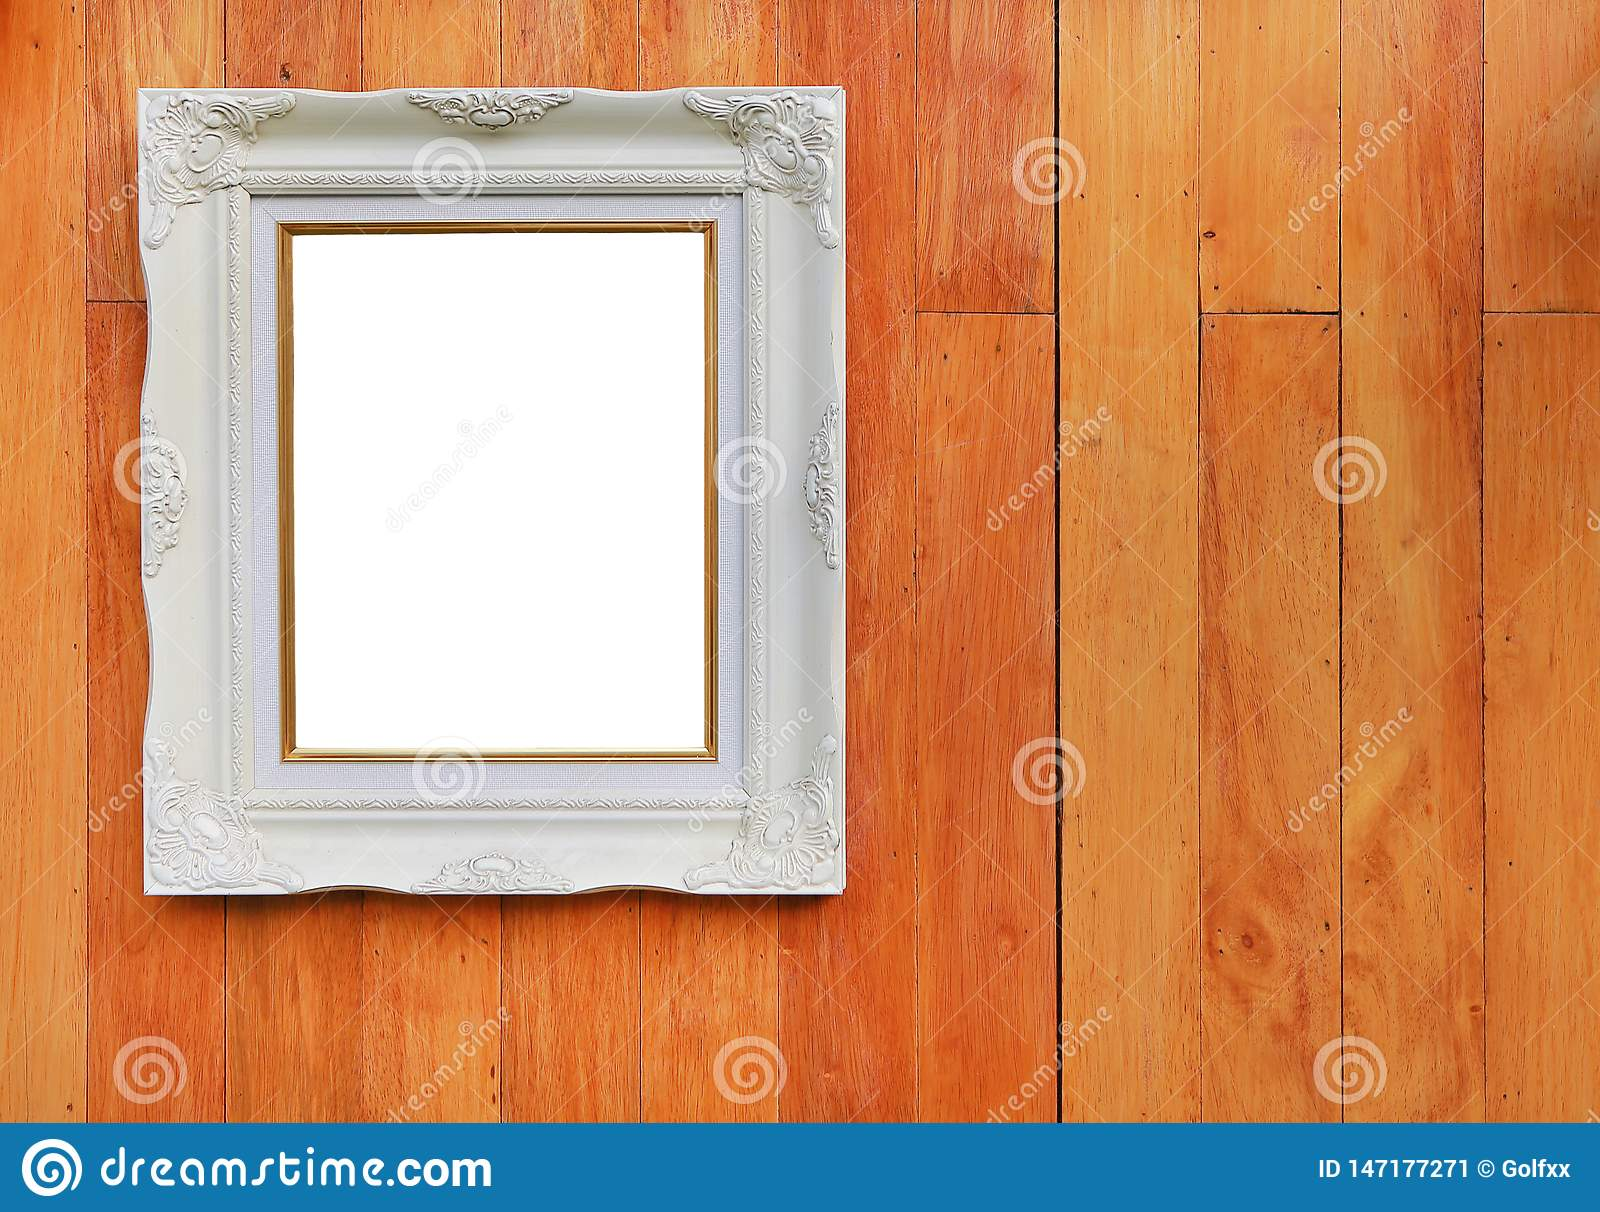 Antique white photo frame with empty space for your picture or text placed on wood plank wall background